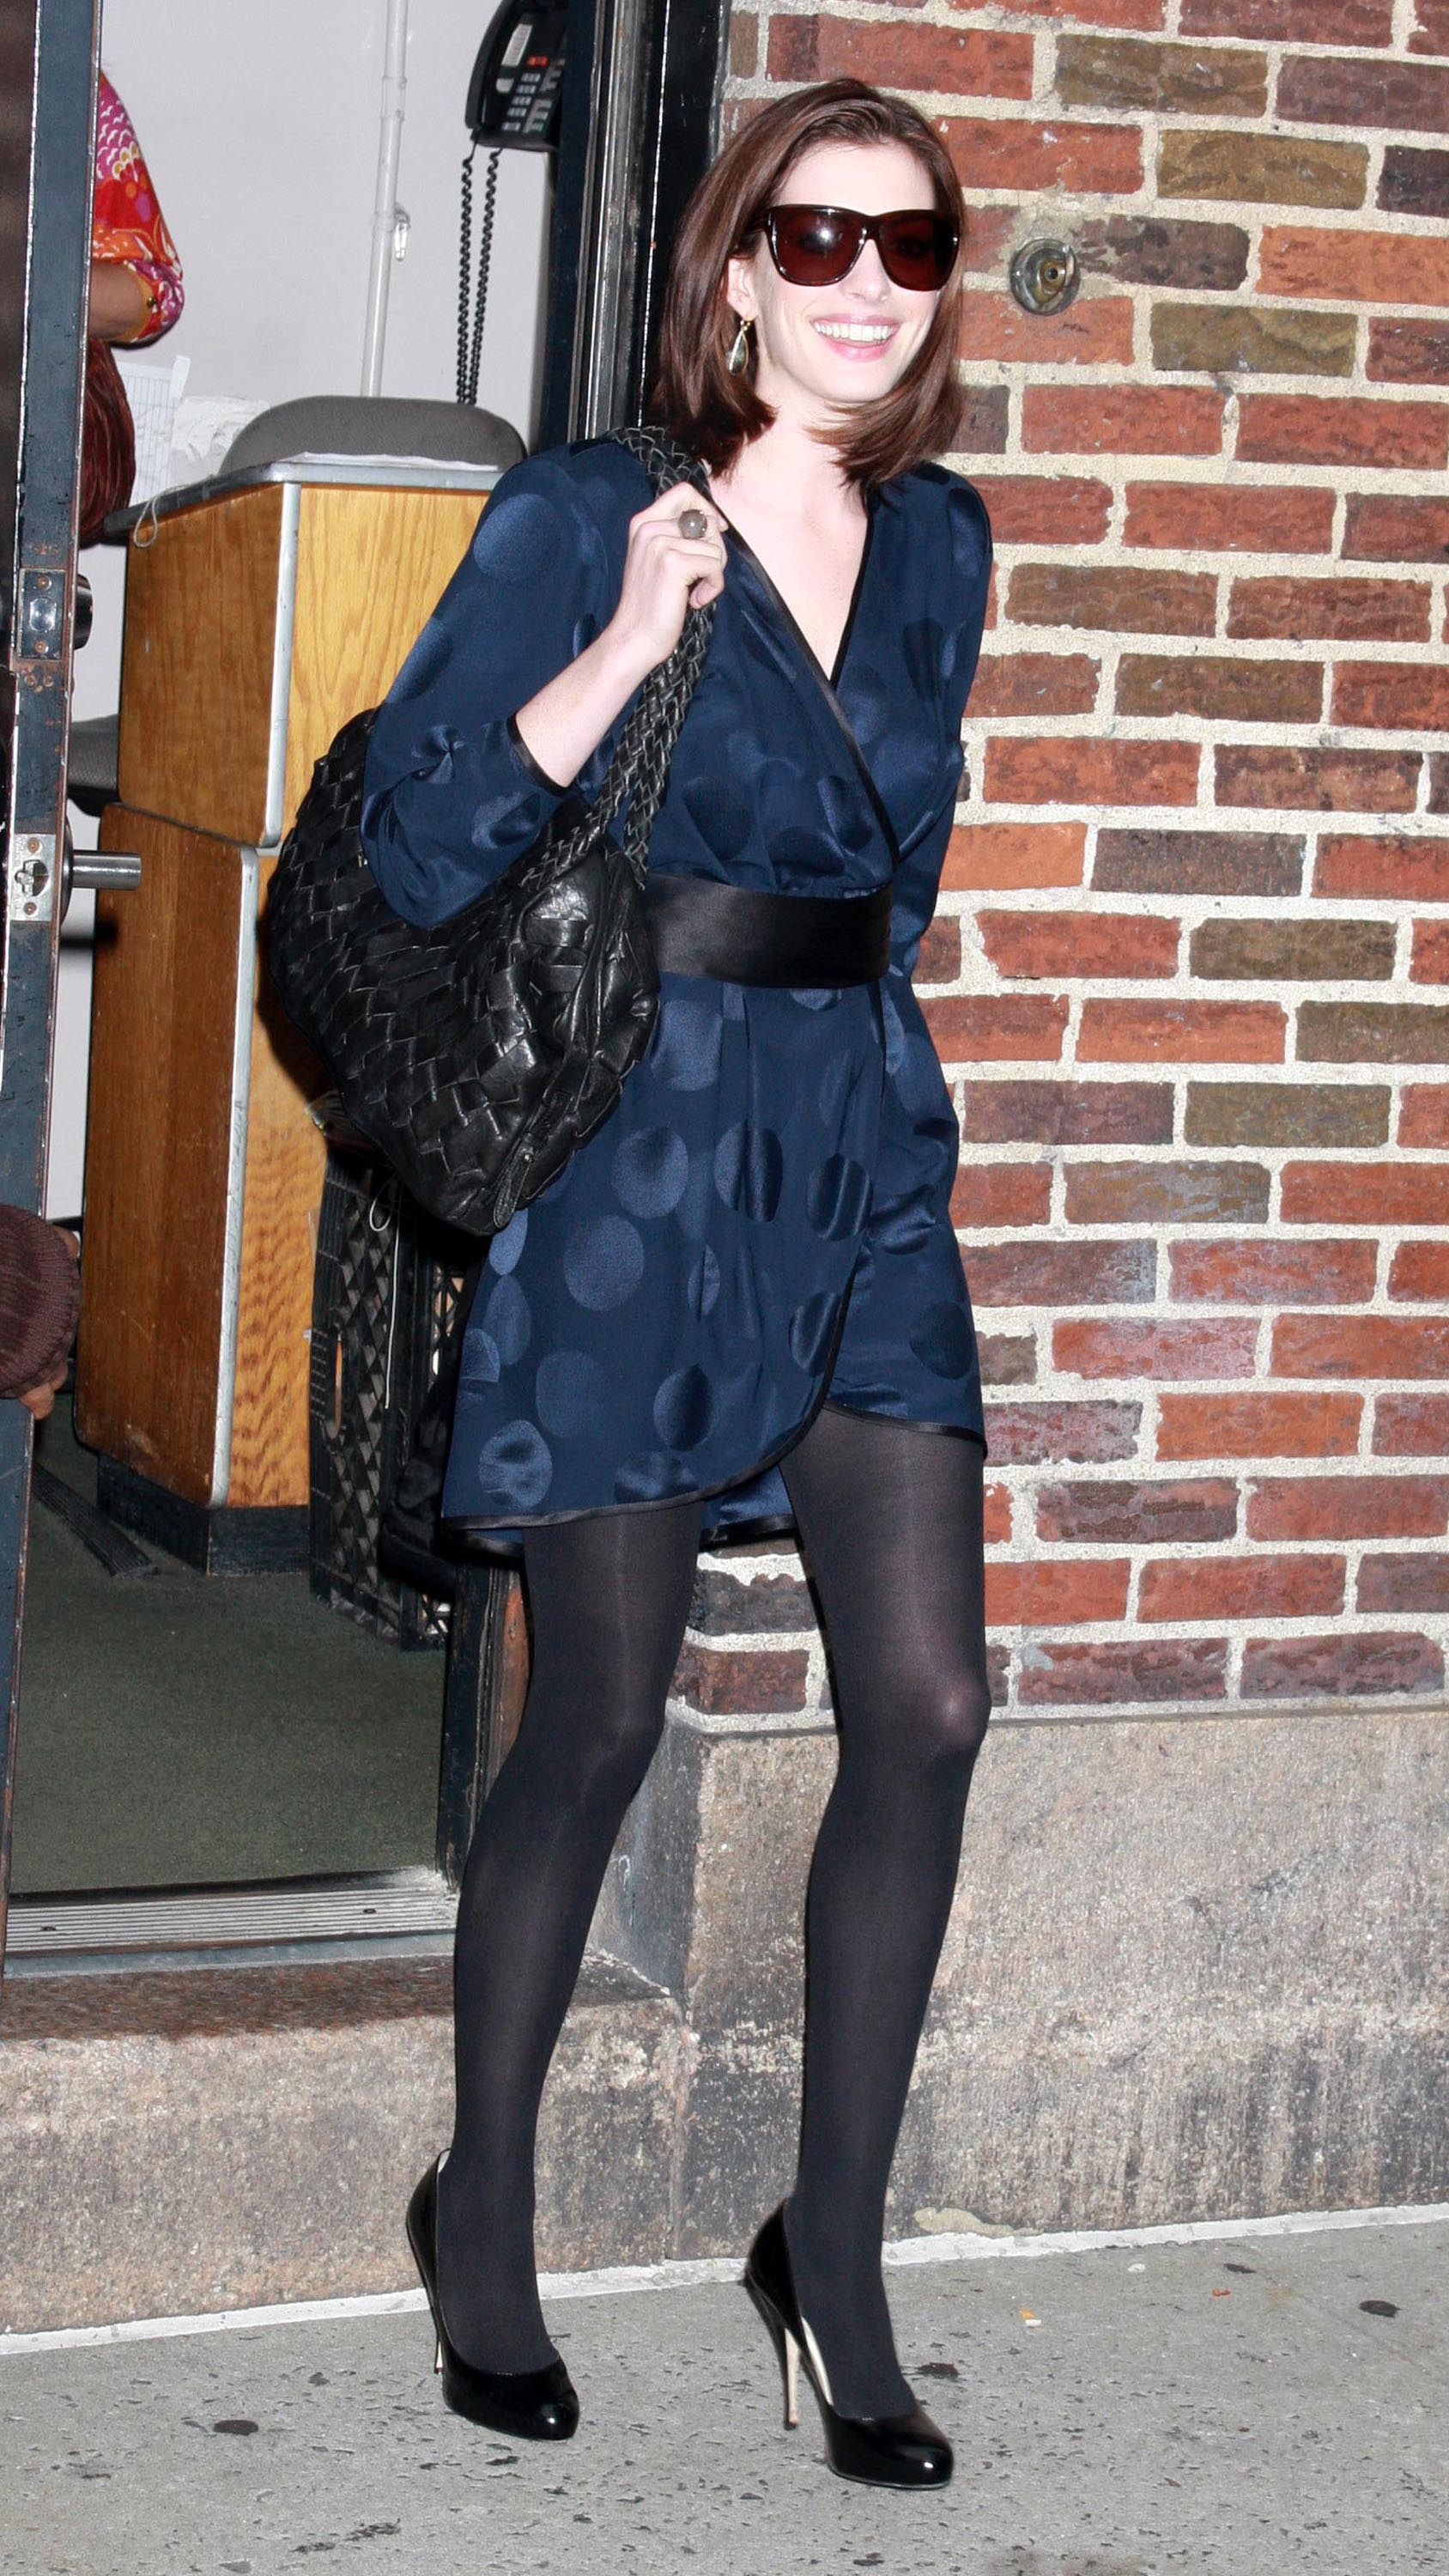 47277_Anne_Hathaway_2008-09-30_-_visits_the_Late_Show_with_David_Letterman_4177_122_974lo.jpg